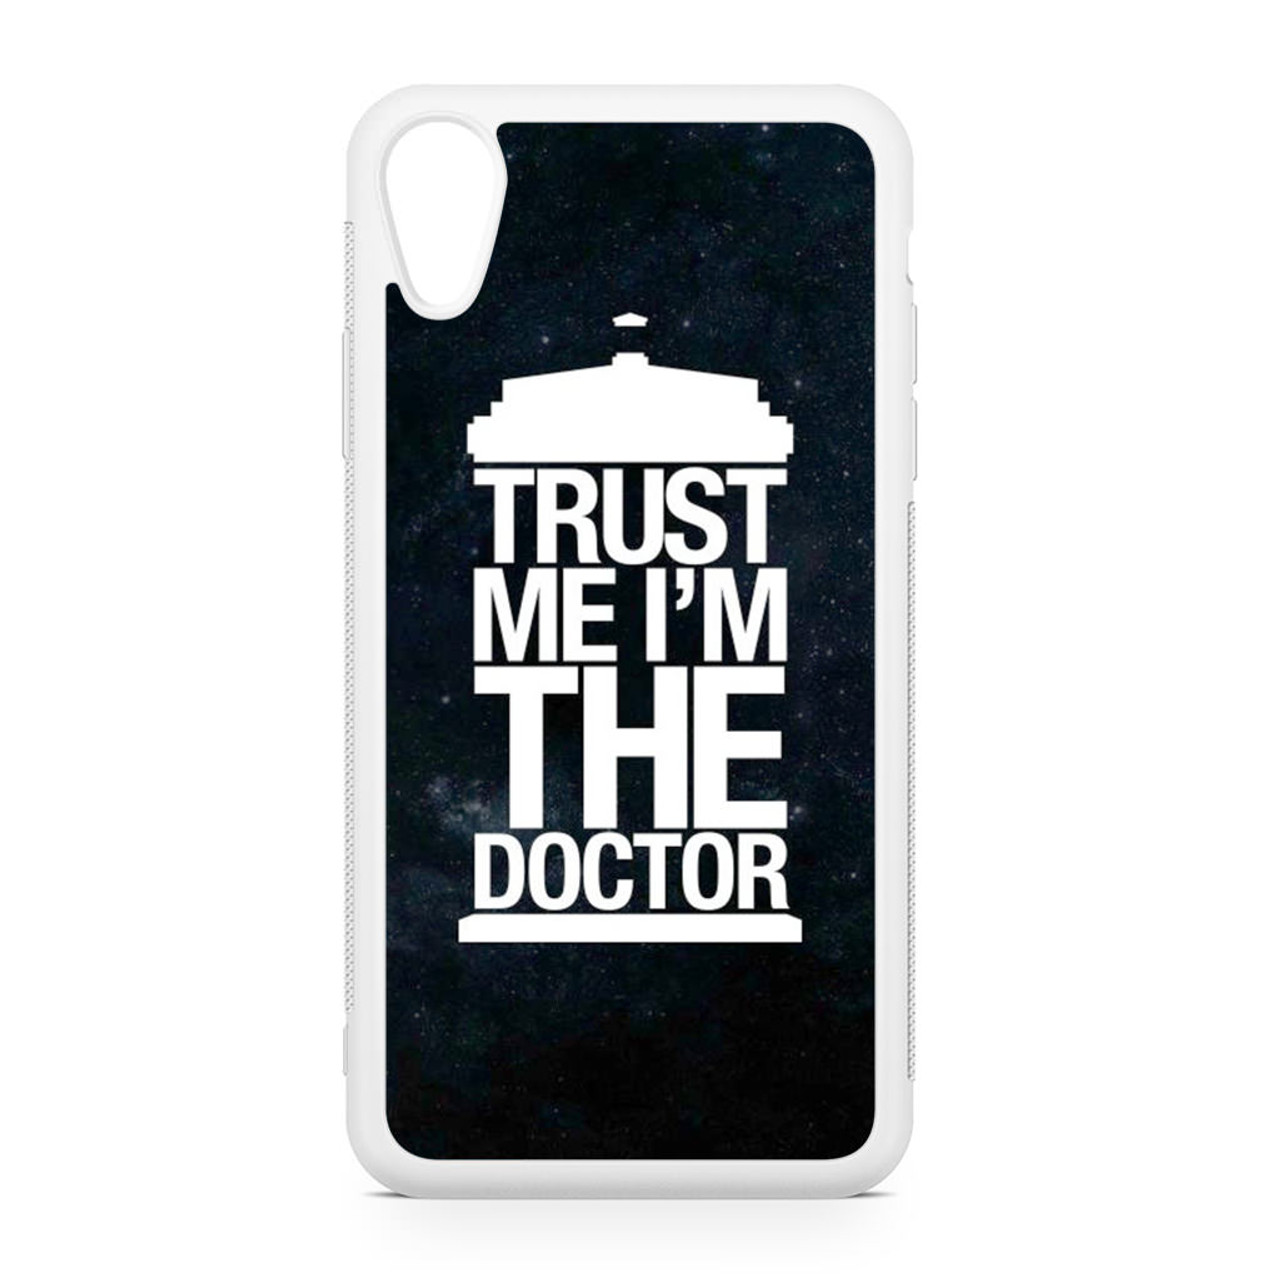 DOCTOR WHO TRUST ME I M THE DOCTOR iphone case